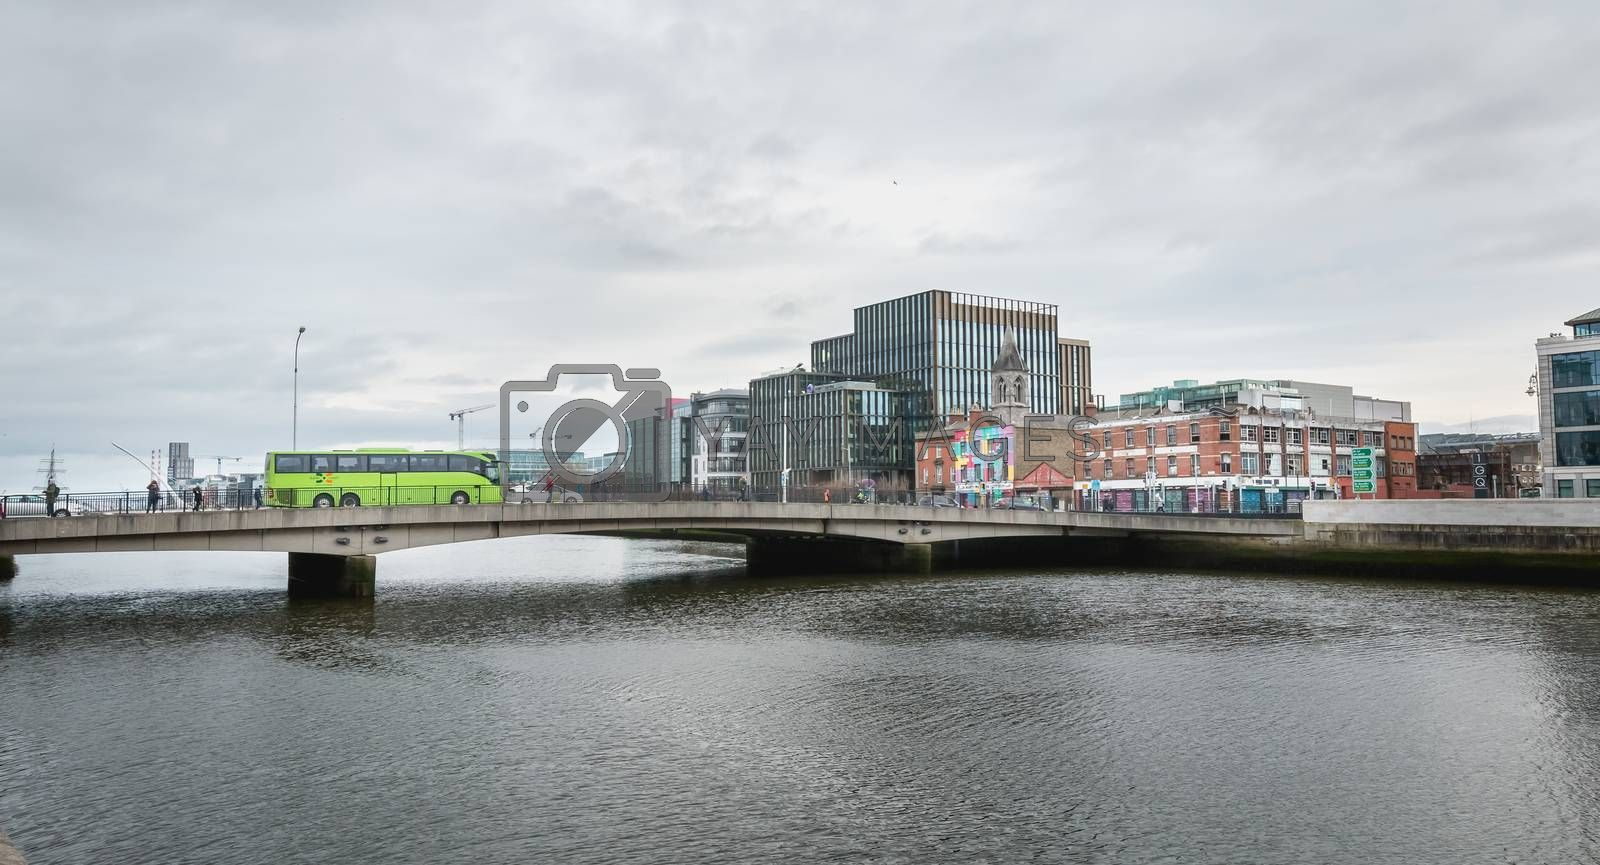 Dublin, Ireland - February 12, 2019: mix of modern and old architecture along the Liffey River in the city center on a winter day